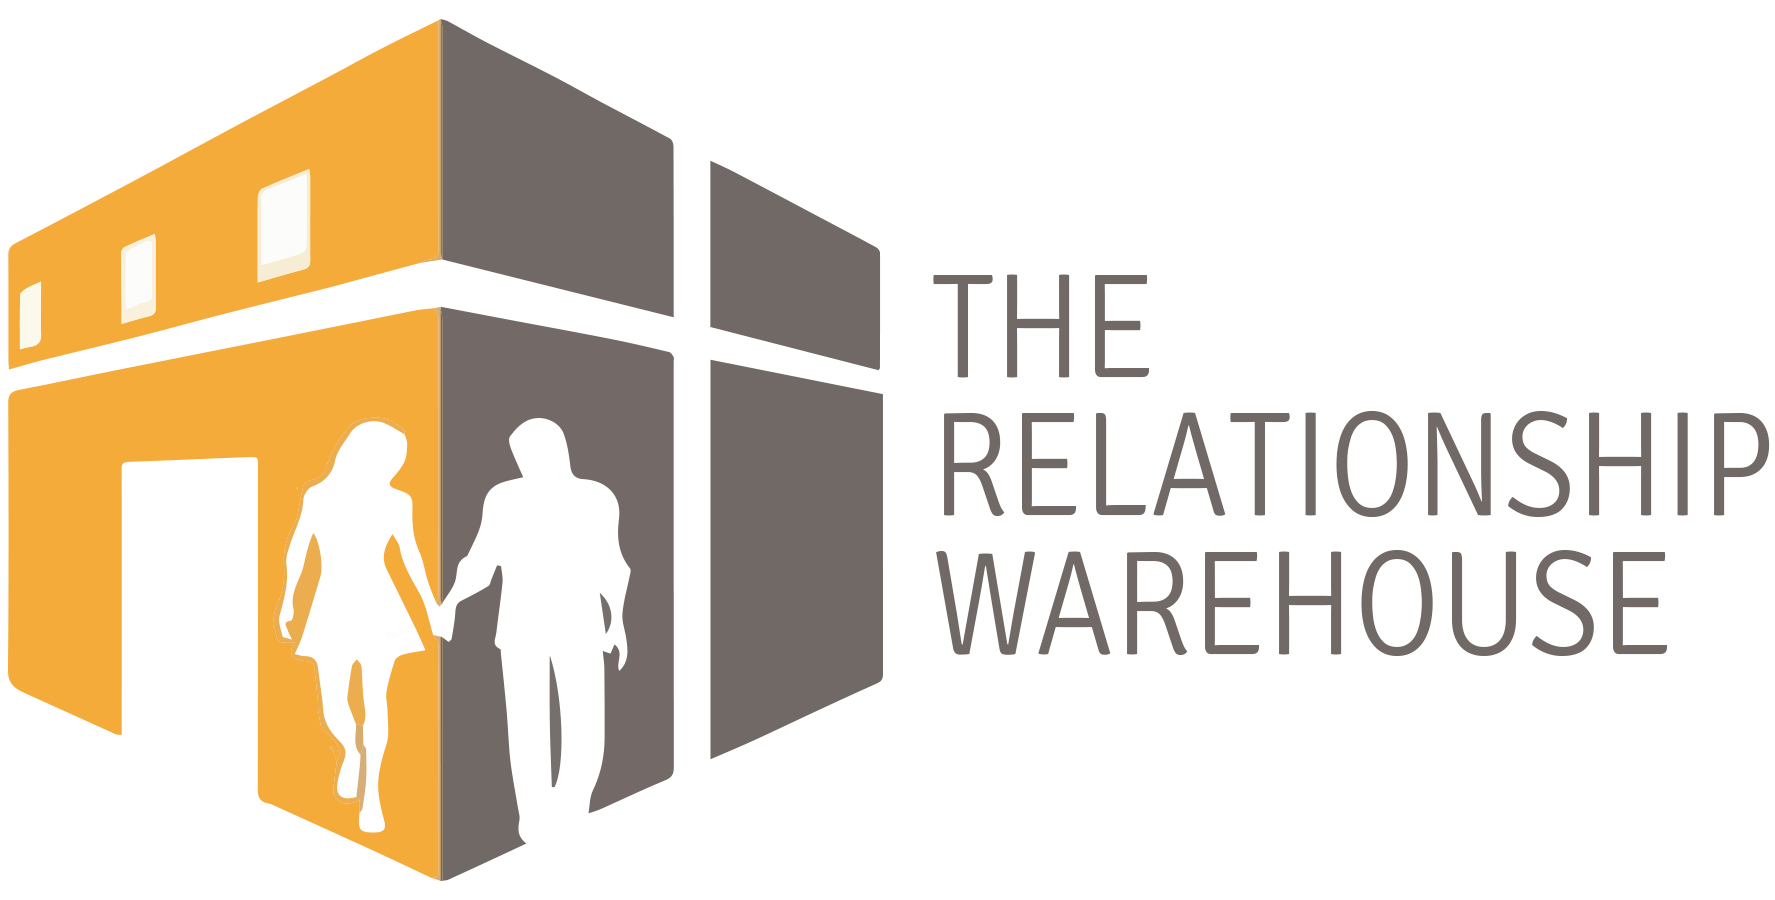 The Relationship Warehouse